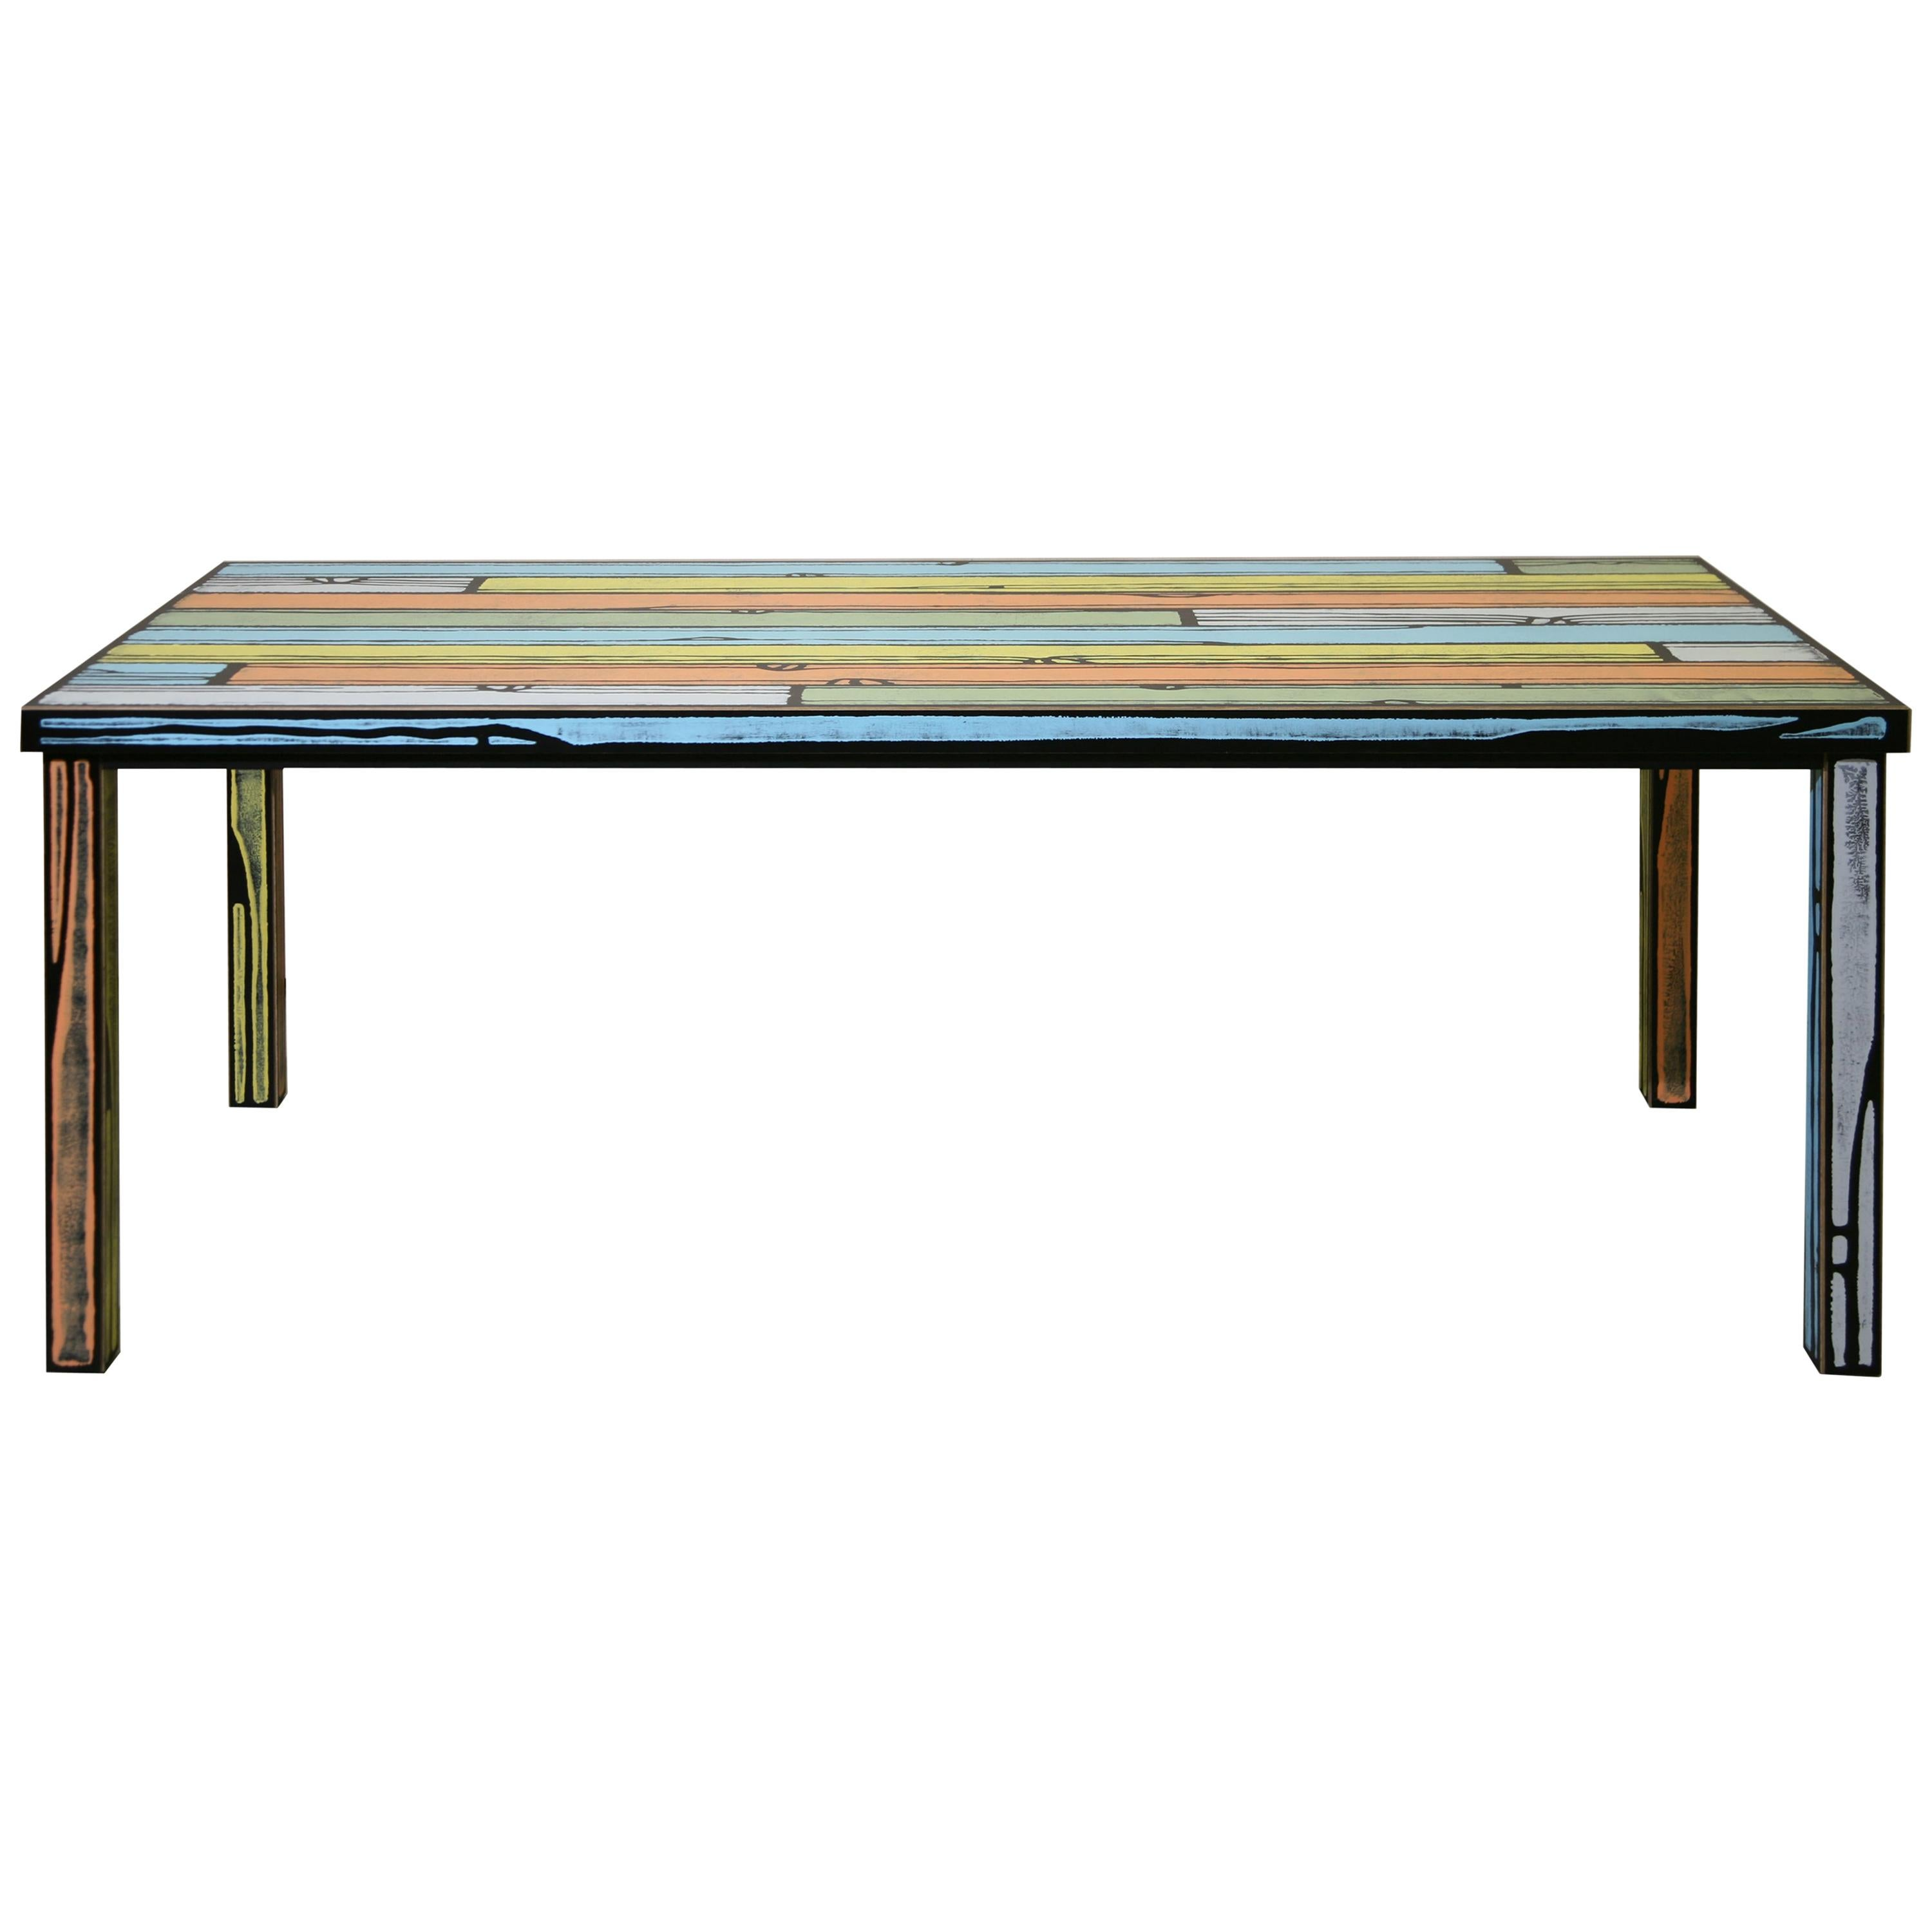 Established & Sons Wrongwood Dining Table by Richard Woods & Sebastian Wrong